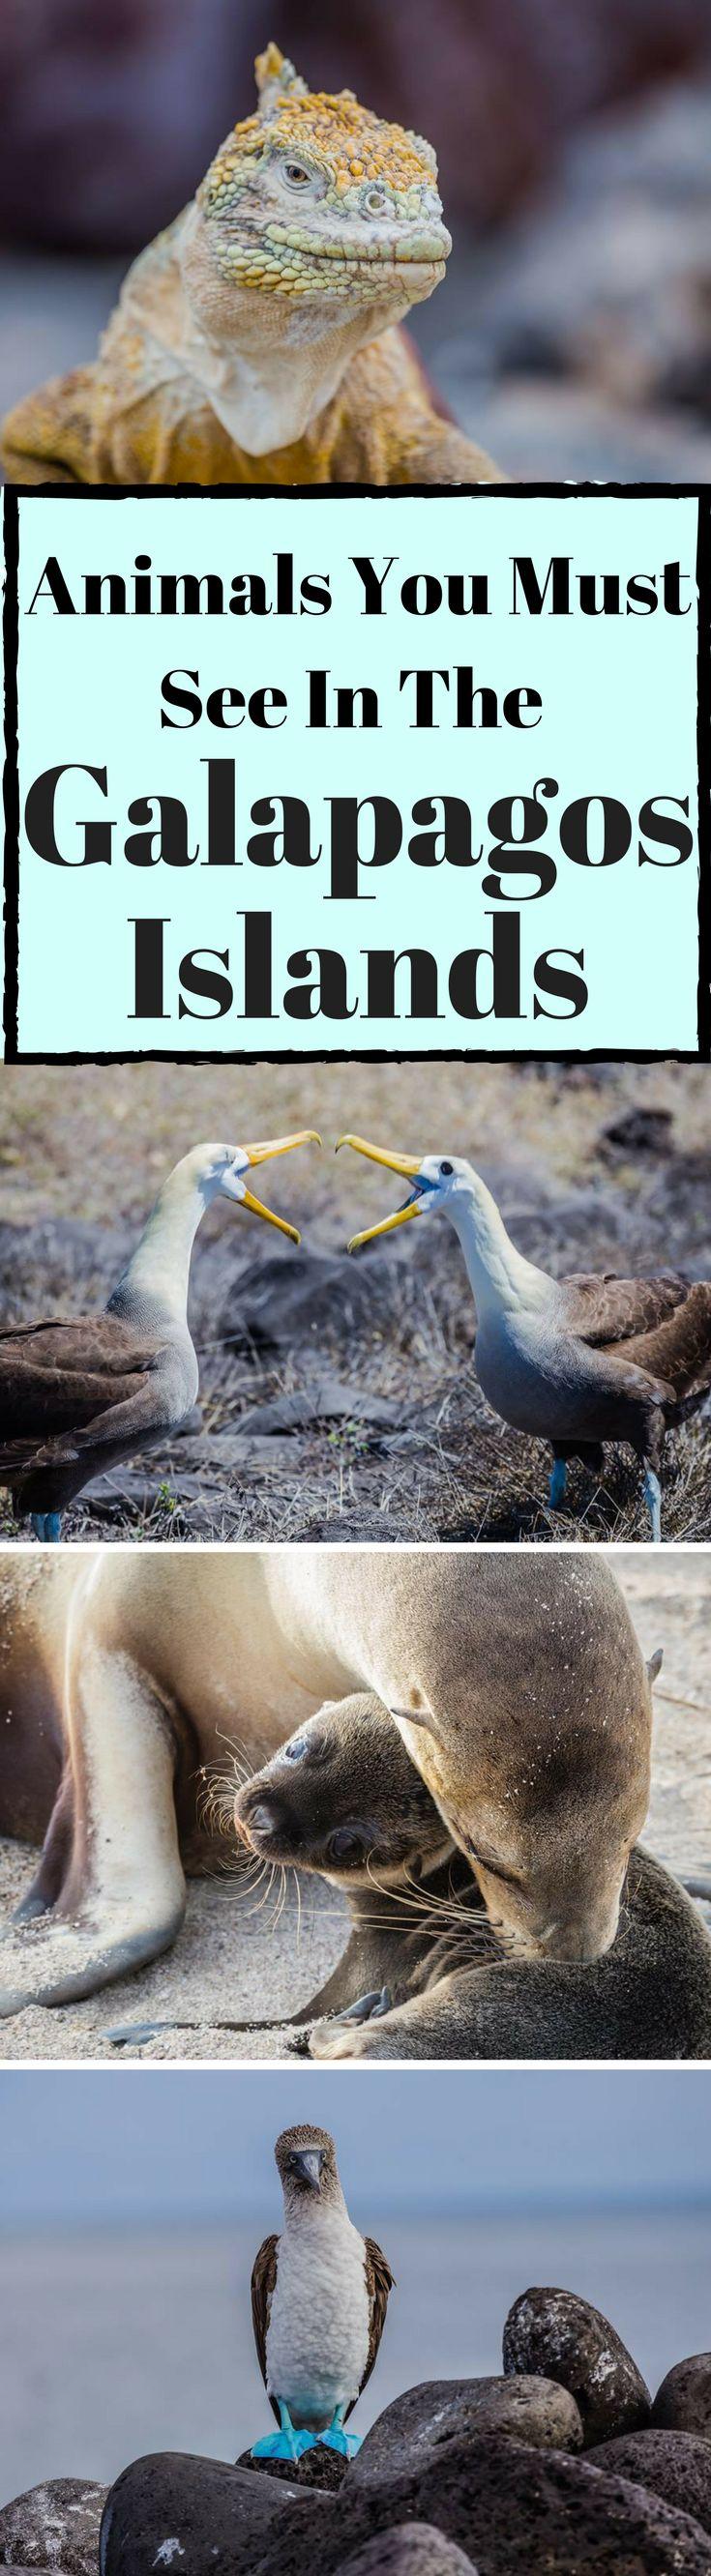 Animals you must see in the Galapagos Islands. The Galapagos Islandsare celebrated throughout the world for their unique natural wonders and the rare and intriguing wildlifethat played such an important role in Darwin's theories of Evolution & Natural Selection. The wildlife that amazed, Click to read Unique Galapagos Islands Animals You Must See by America's Adventure Couple the Divergent Travelers Adventure Travel Blog. #Galapagos #Islands #Travel